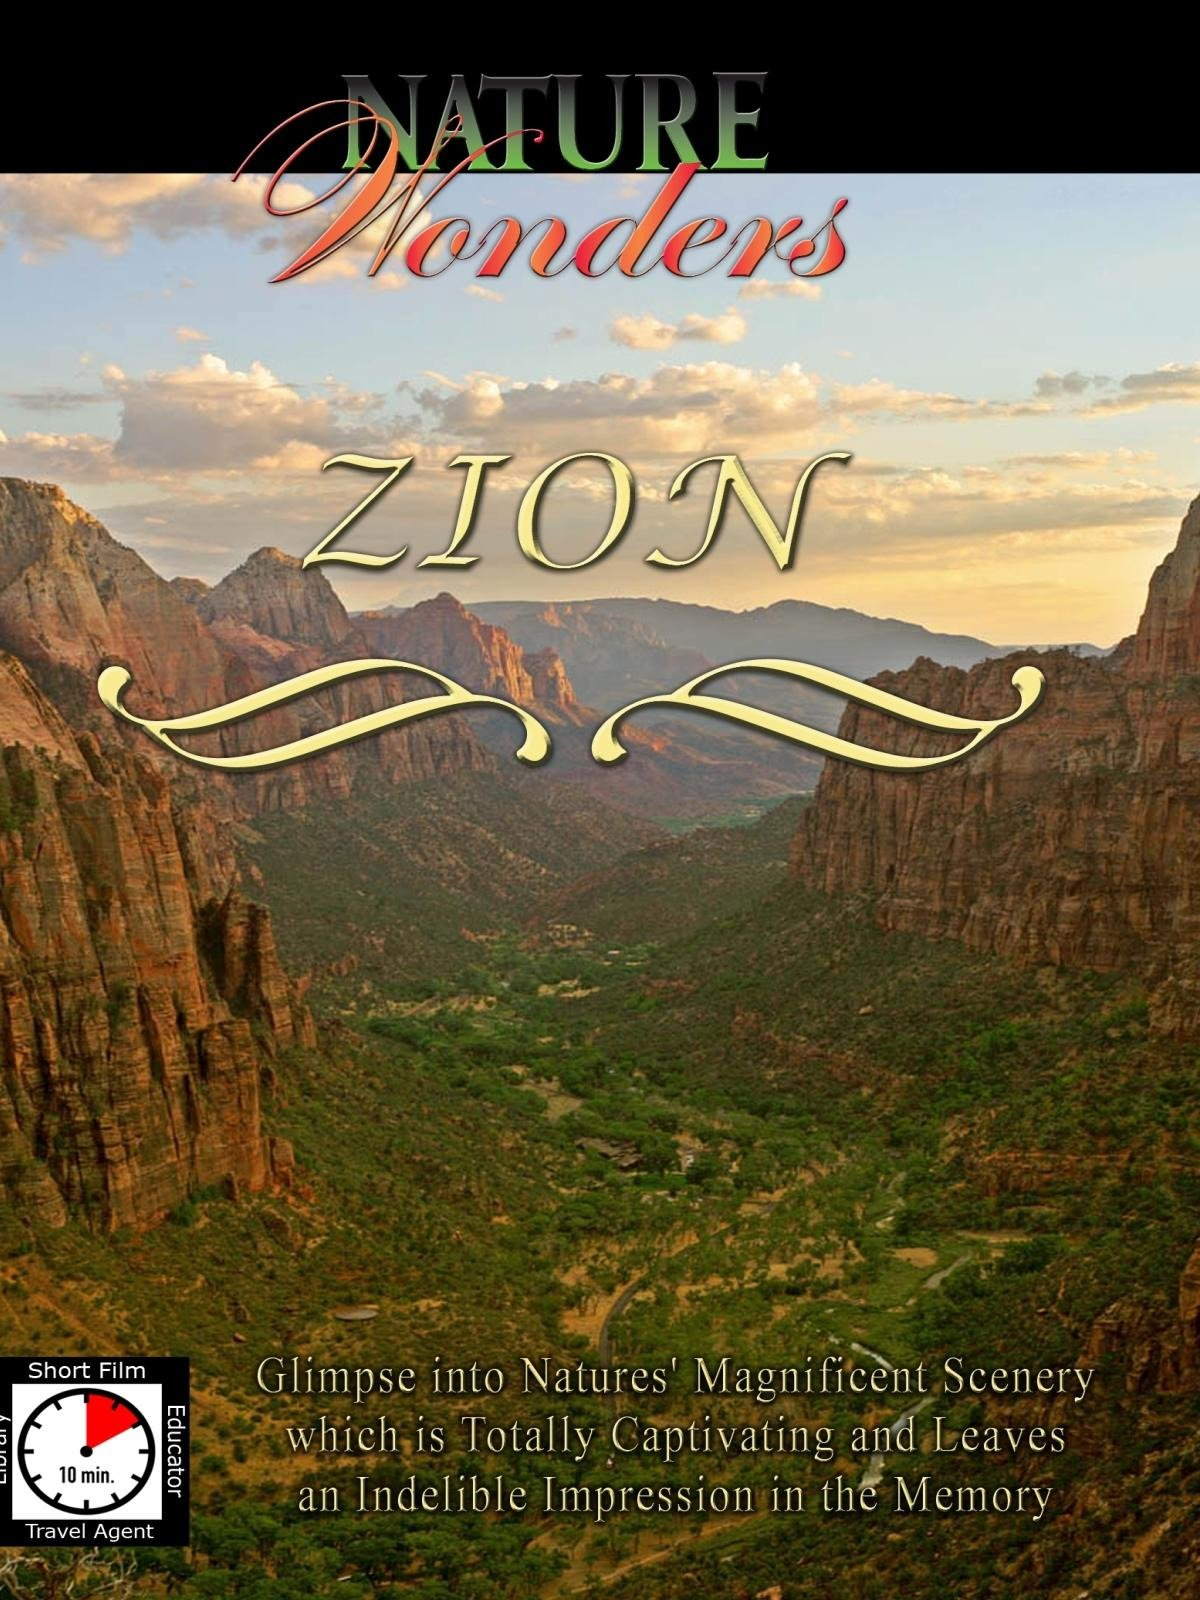 Nature Wonders - Zion - Utah - U.S.A. on Amazon Prime Instant Video UK